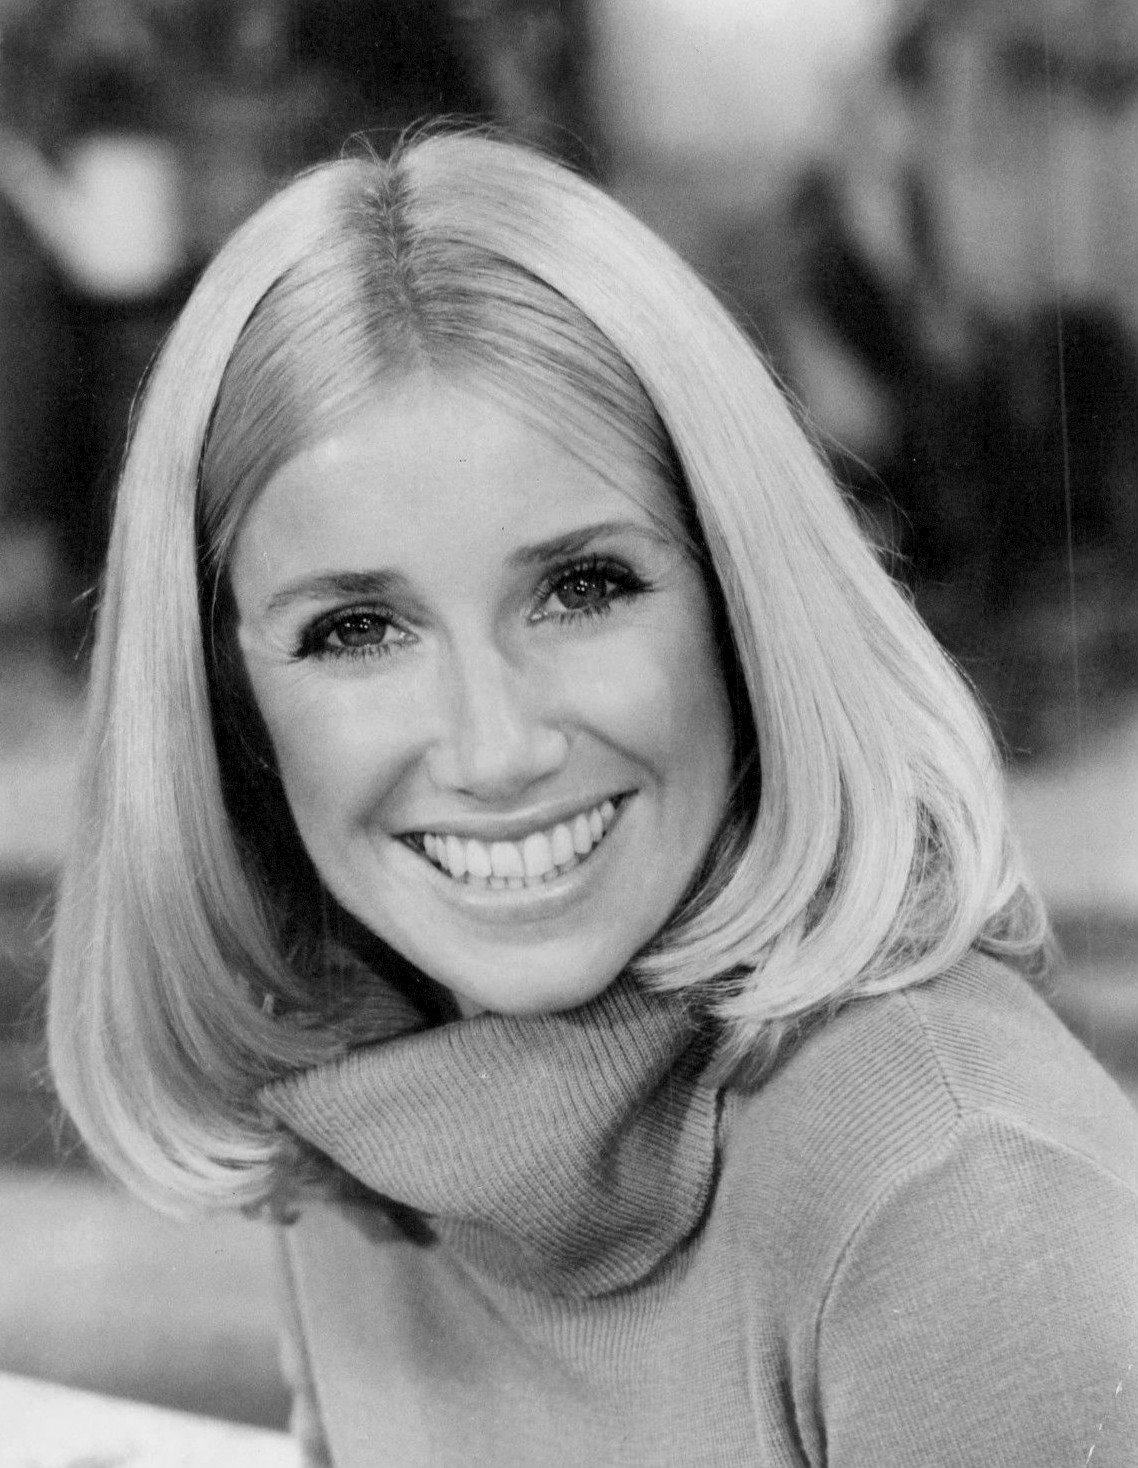 A 1977 photo of Suzanne Somers. | Source: Wikimedia Commons